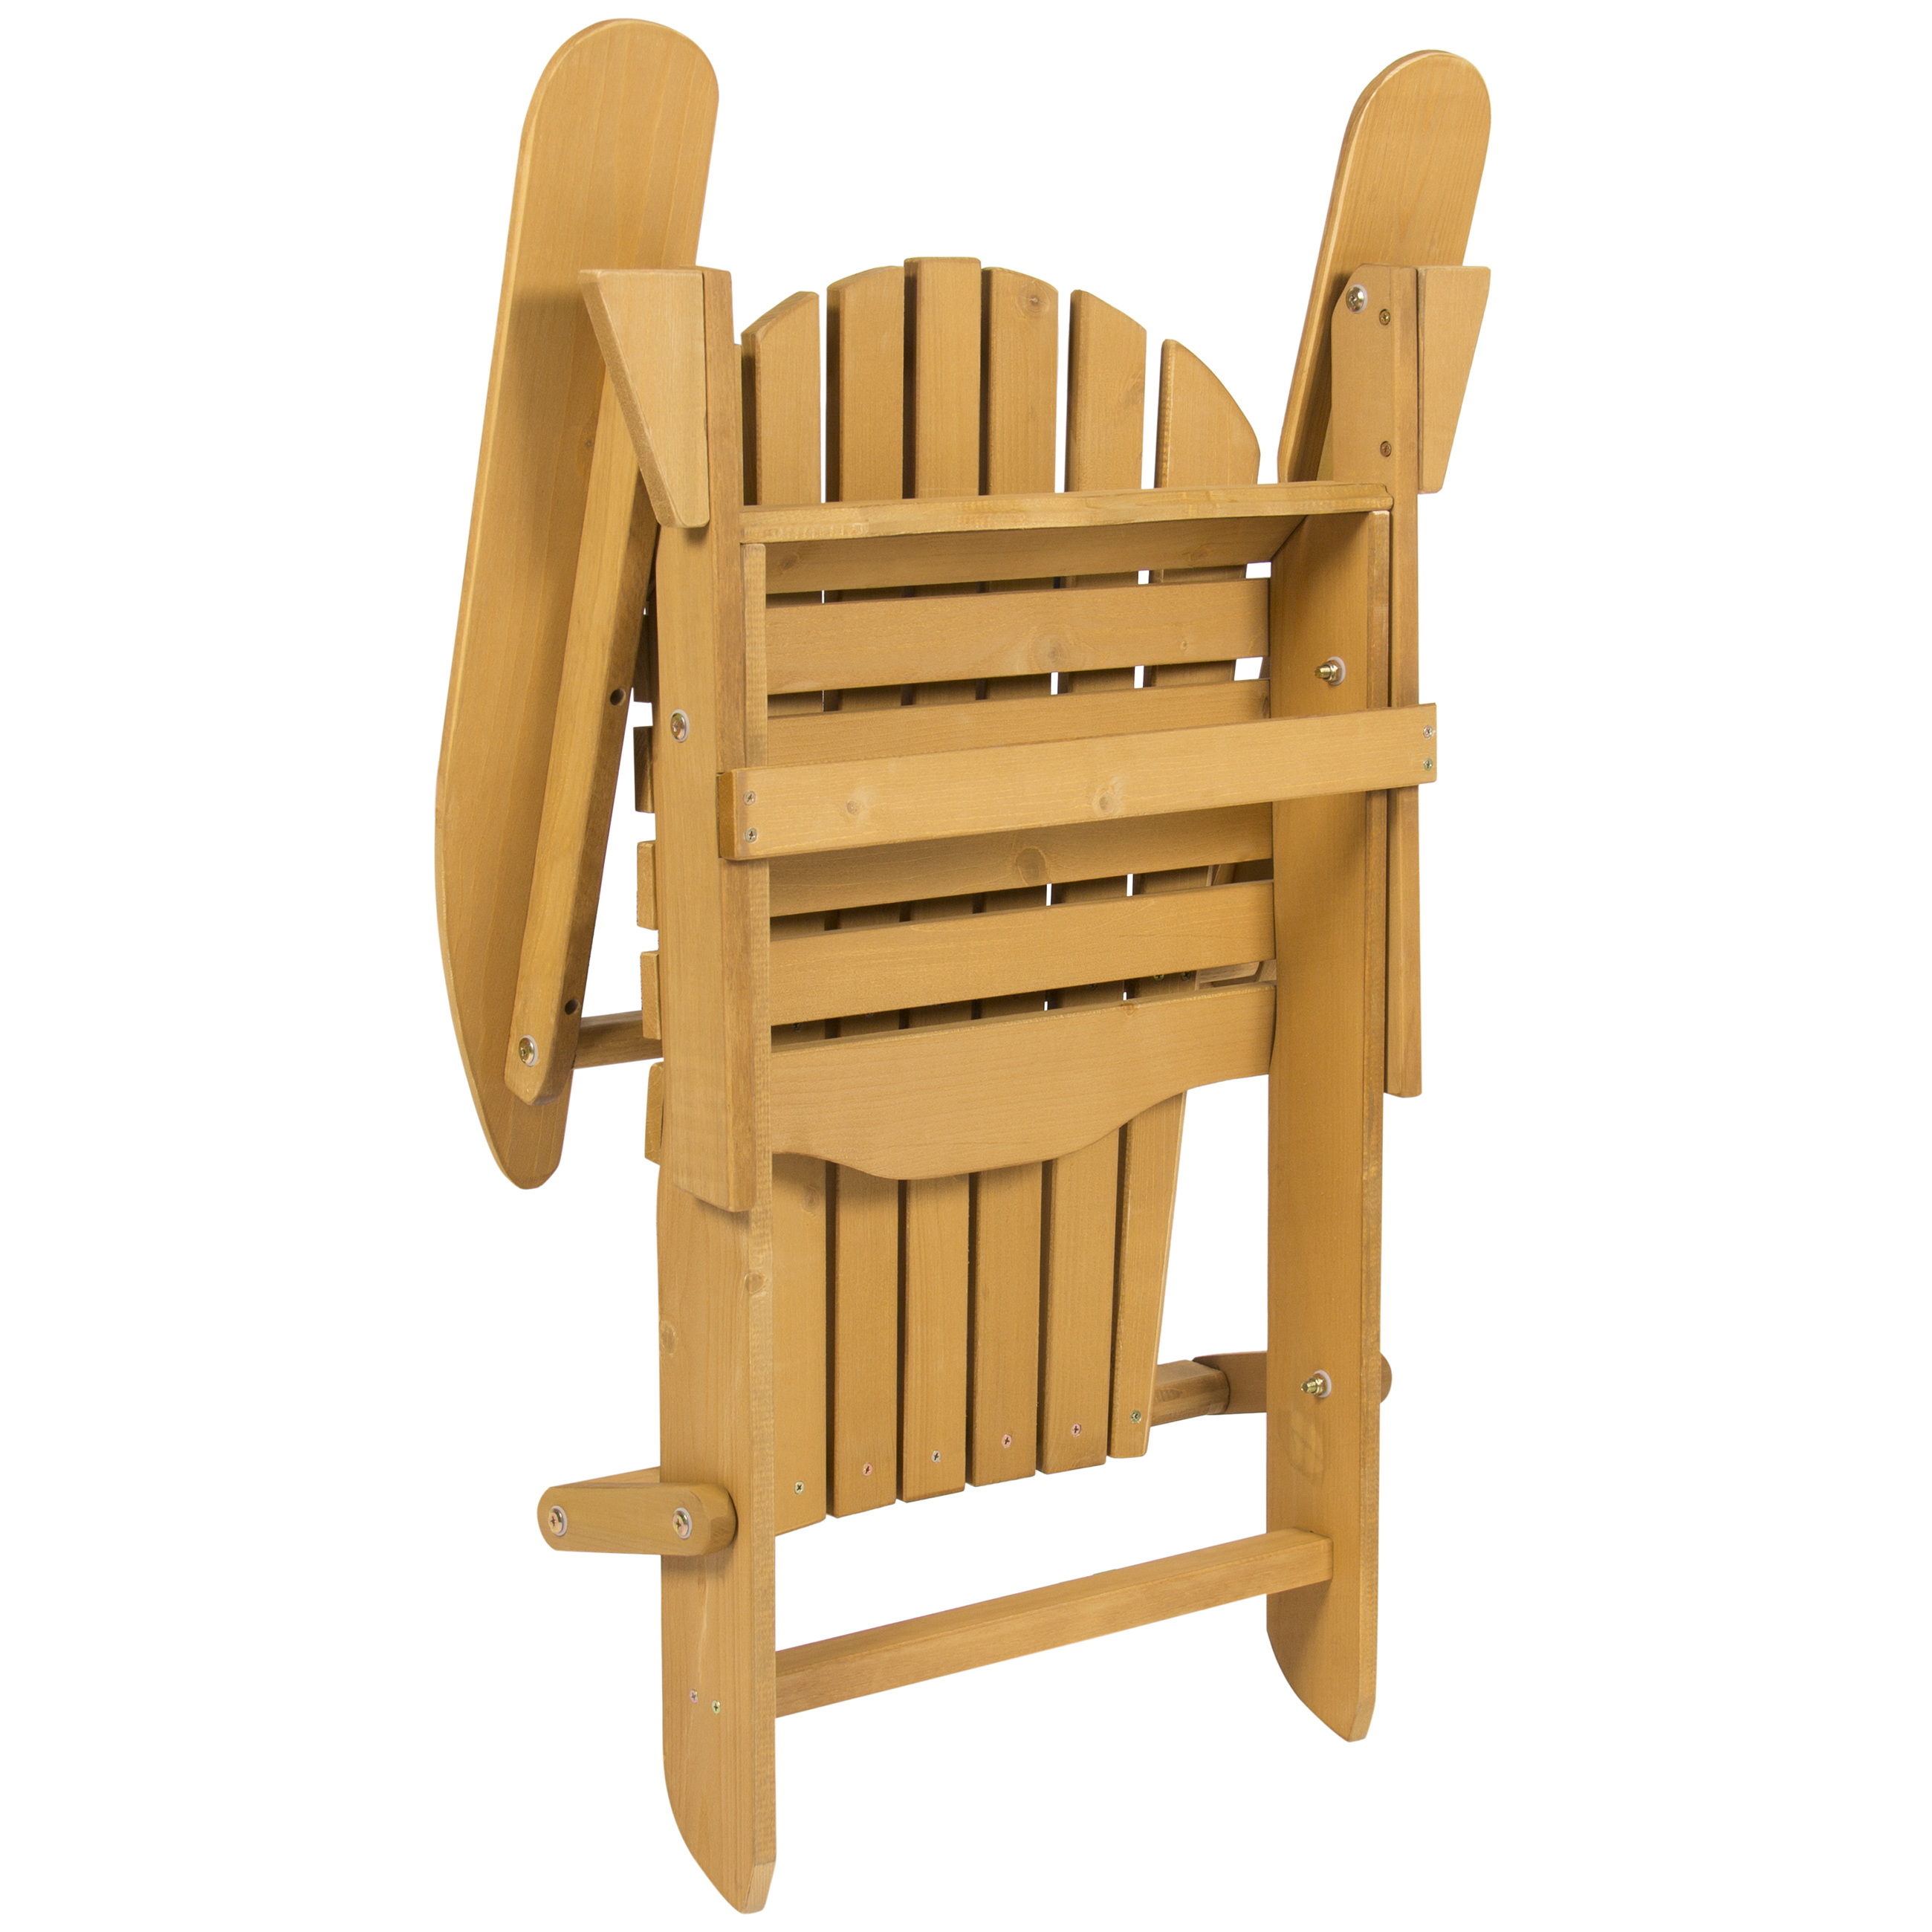 Wood Chair Foldable Patio Lawn Deck Garden Furniture Previous Next